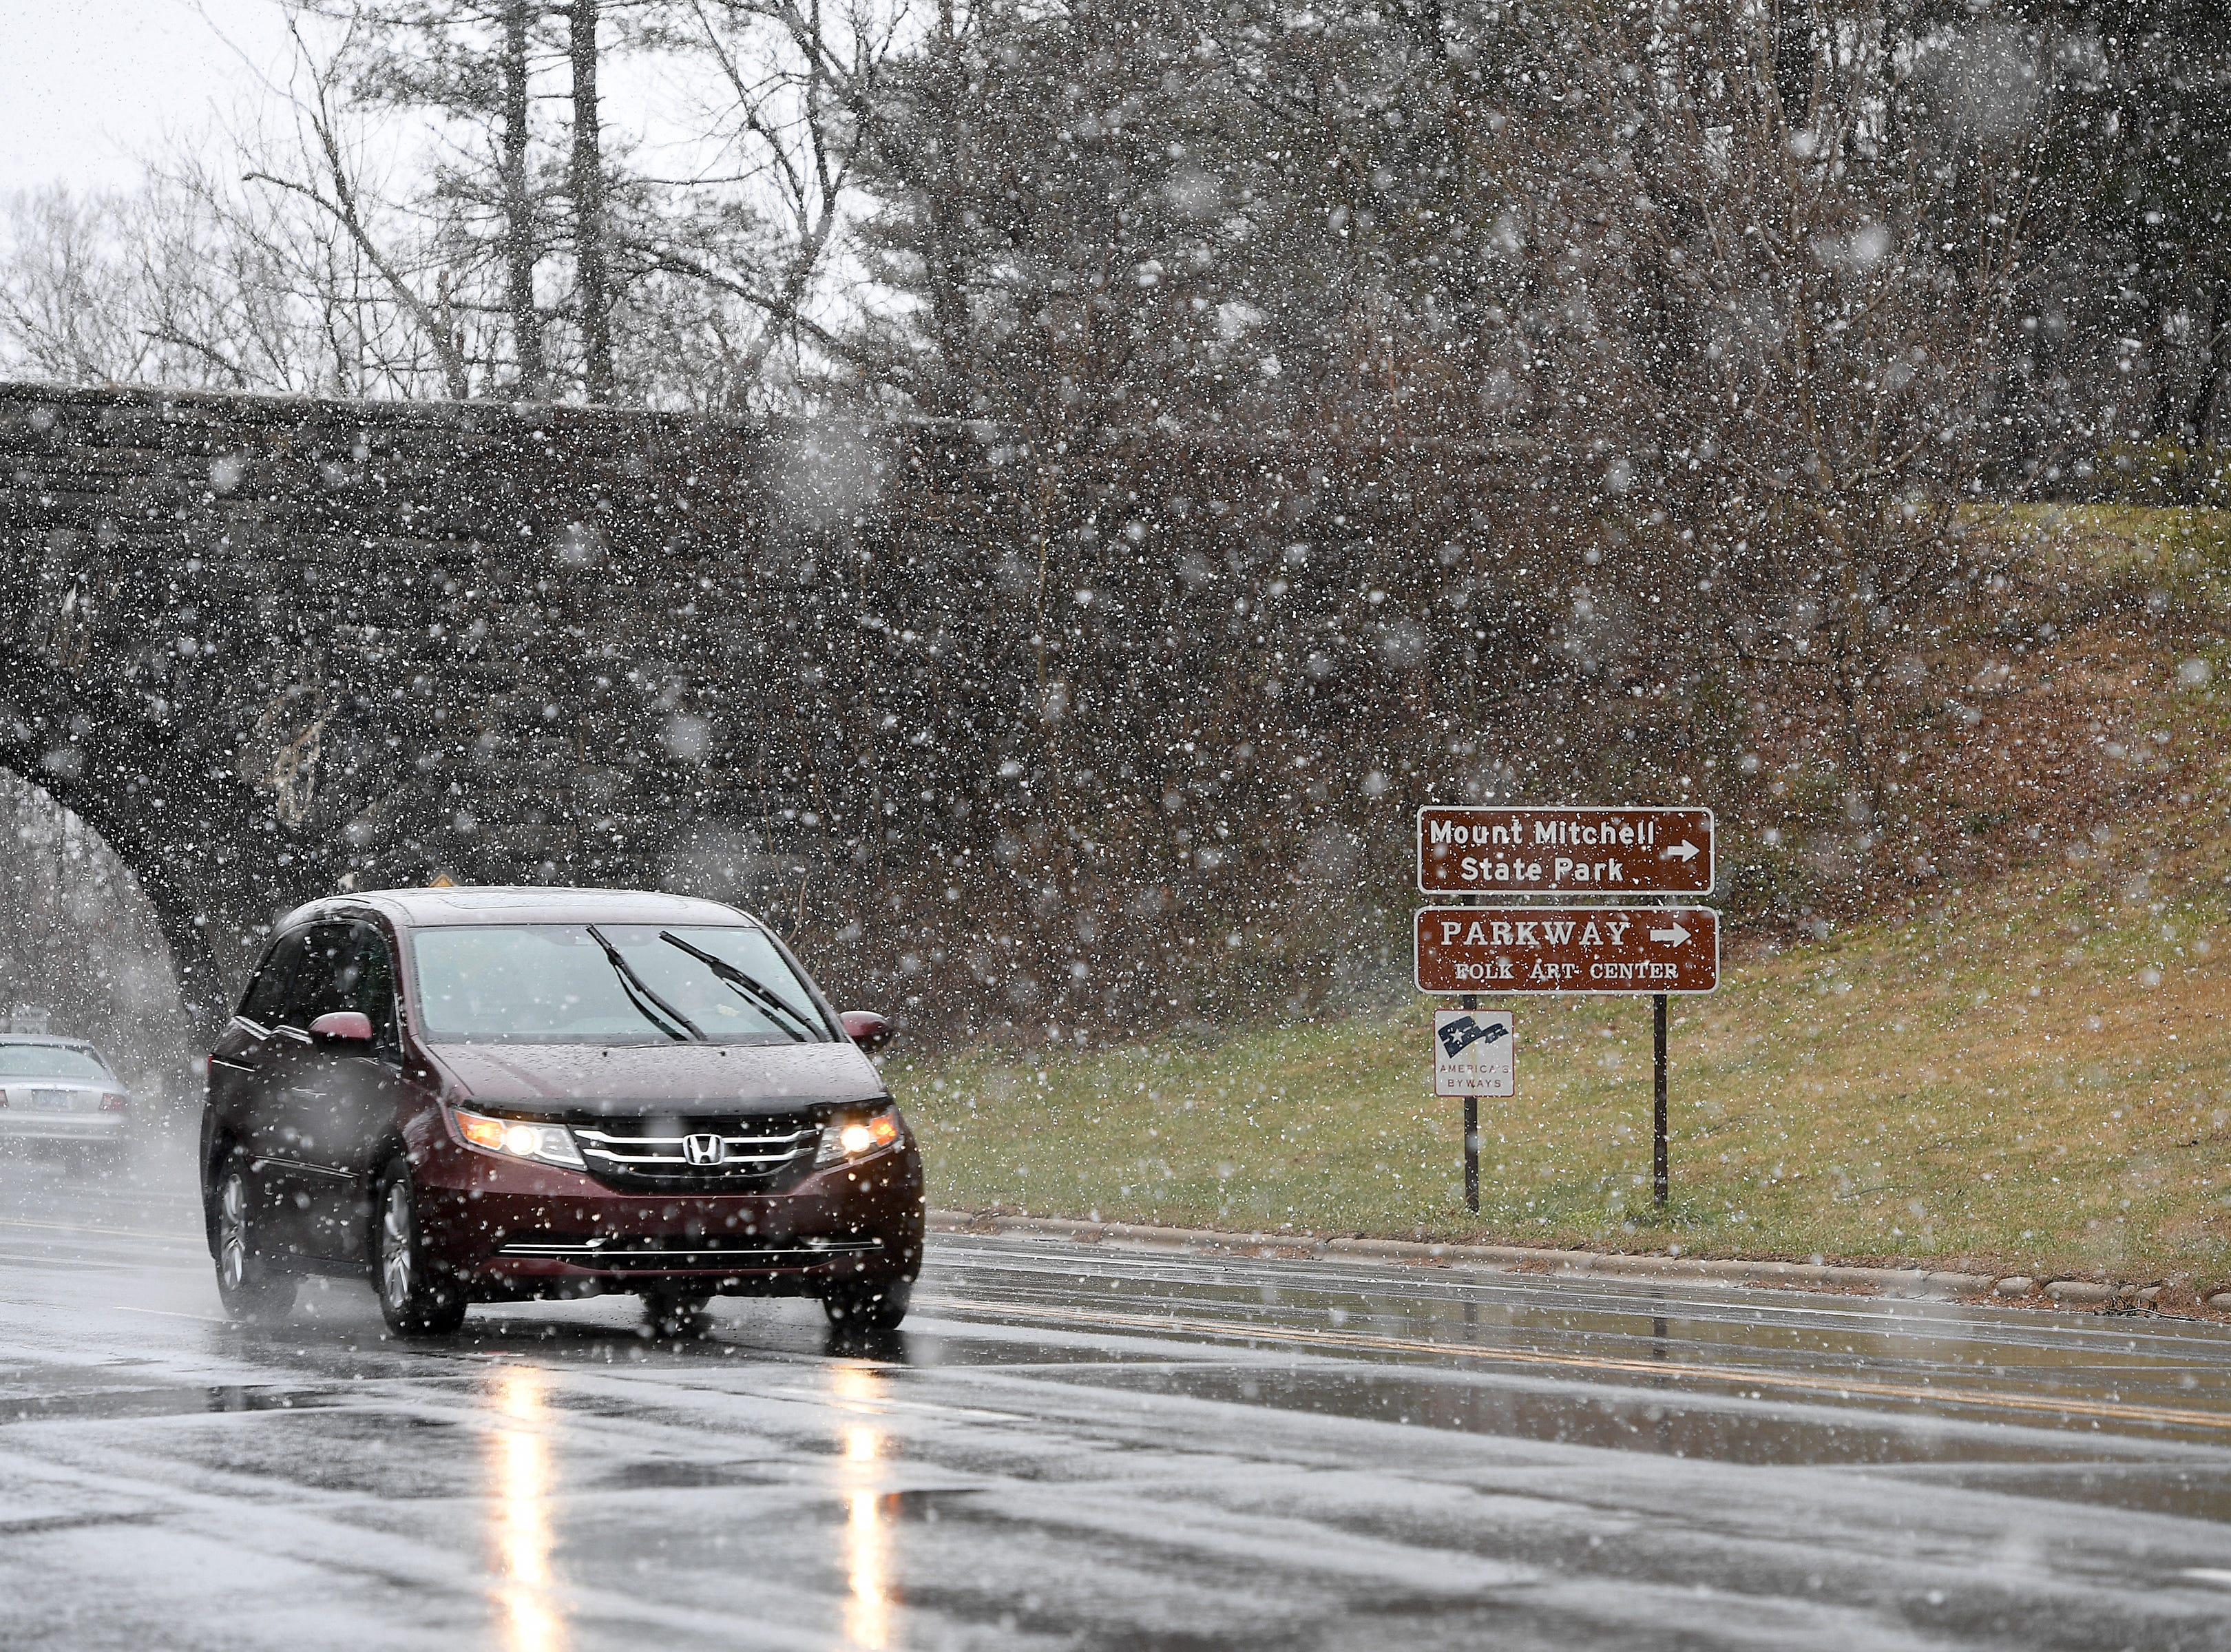 A car drives under the Blue Ridge Parkway on Tunnel Road through the snow on Jan. 29, 2019. The Parkway is closed after the open Folk Art Center and at Tunnel Road.